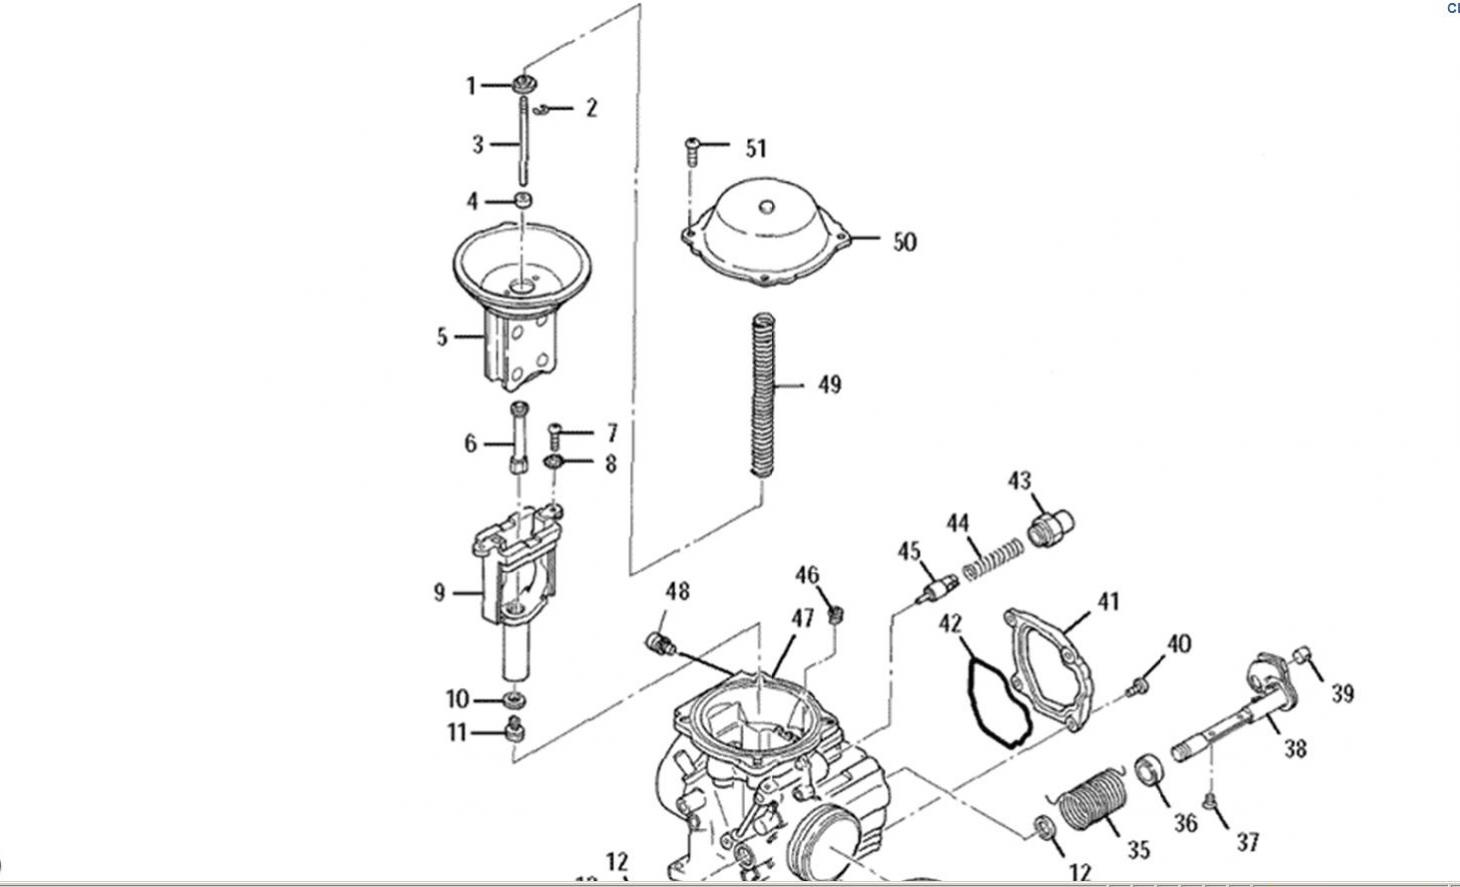 Polaris Carb Diagram Complete Wiring Diagrams 330 Sportsman 400 Trusted U2022 Rh Soulmatestyle Co 250 90